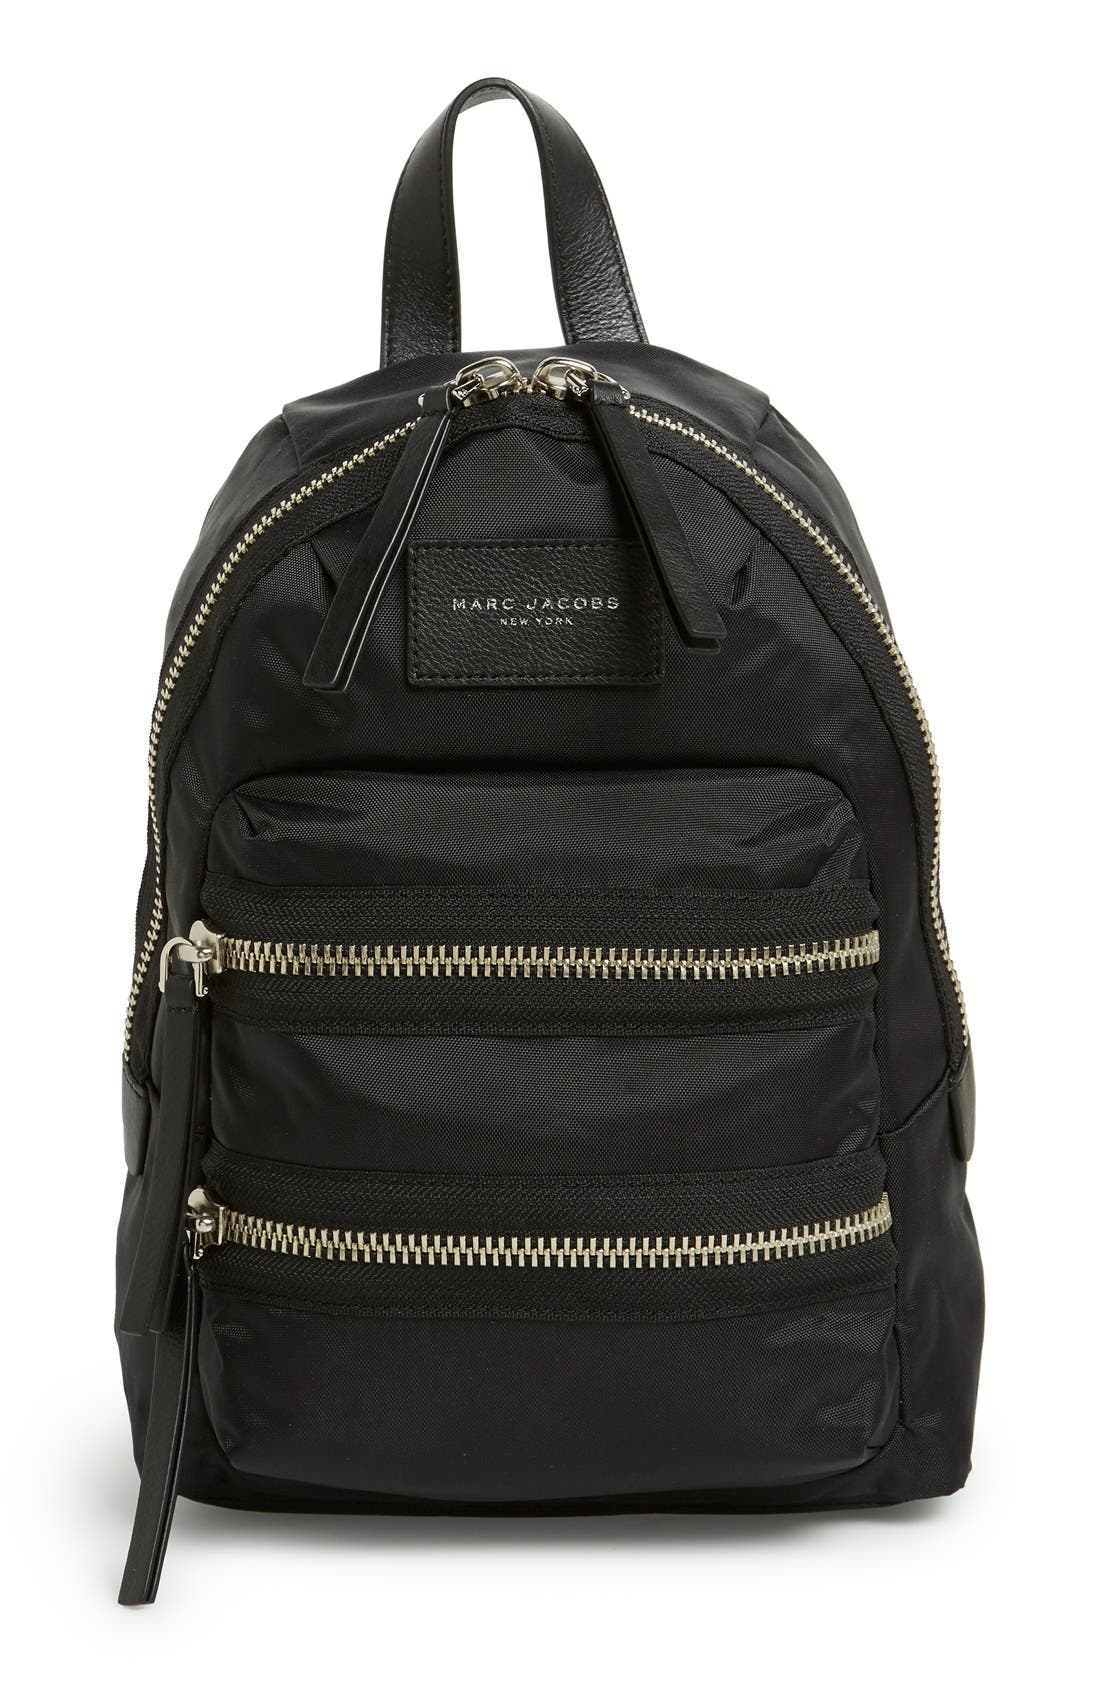 MARC JACOBS 'Mini Biker' Nylon Backpack